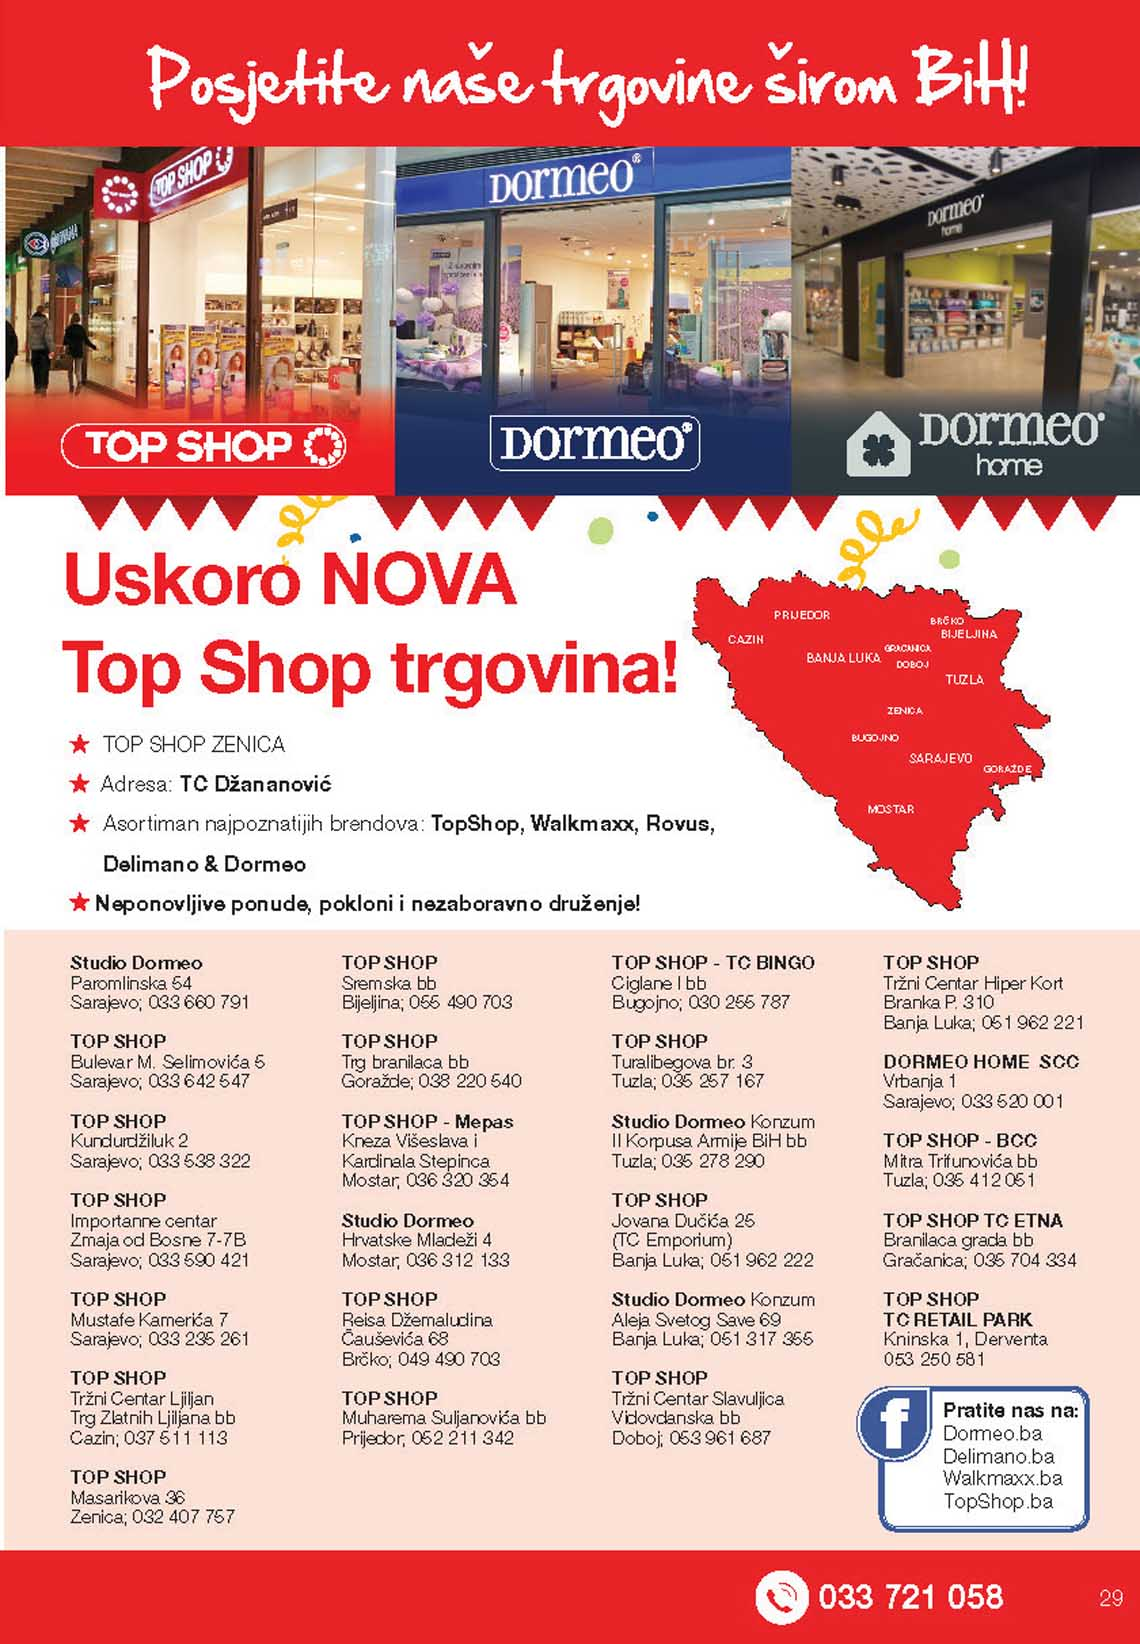 Top shop dormeo delimano